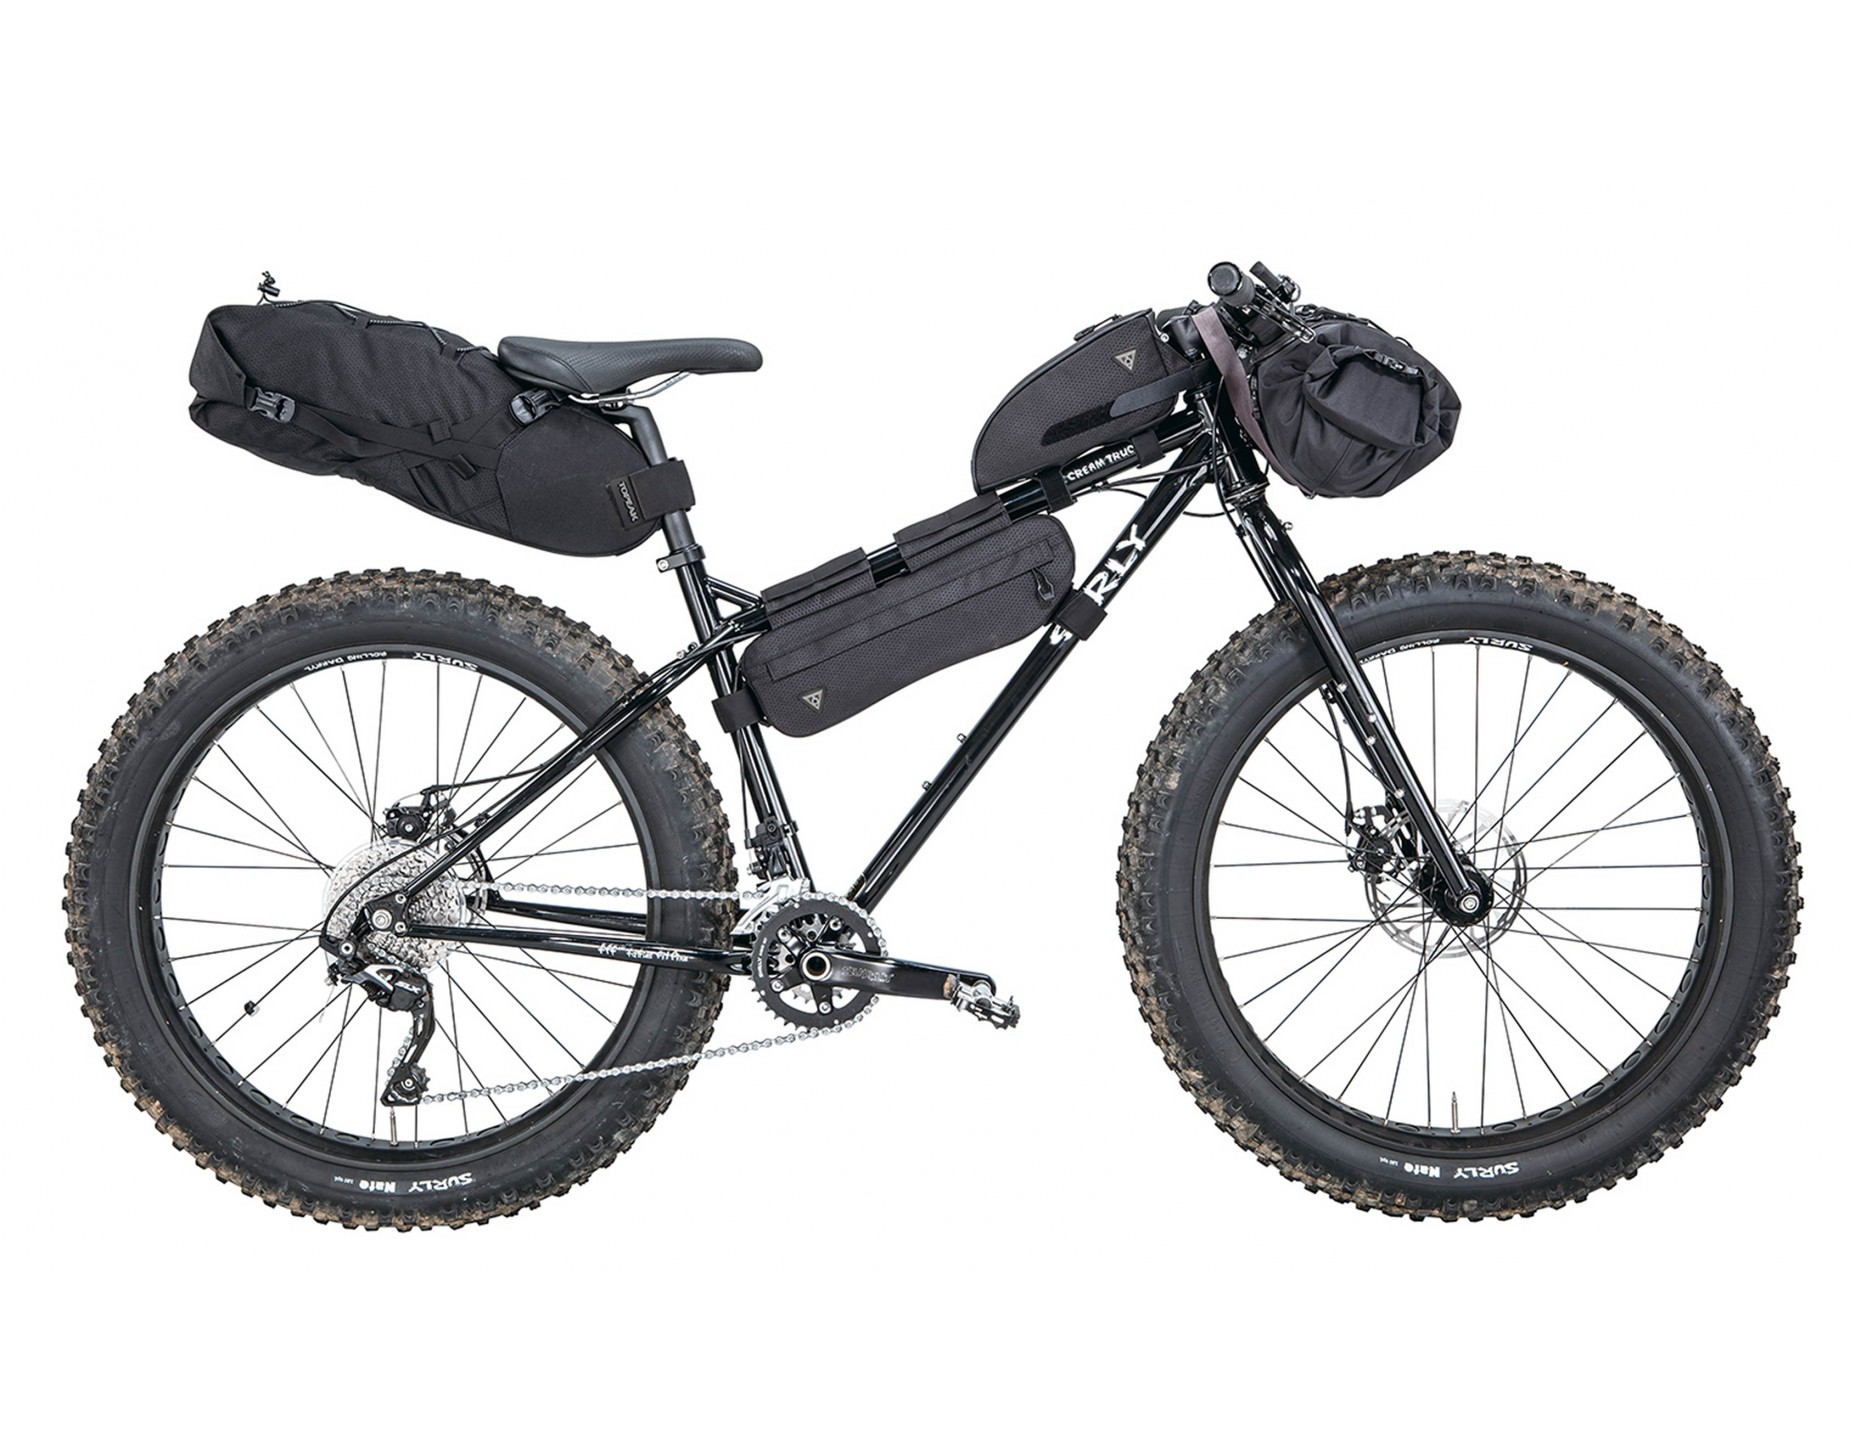 Topeak Midloader Bicycle Frame Bag Everything You Need Rose Bikes